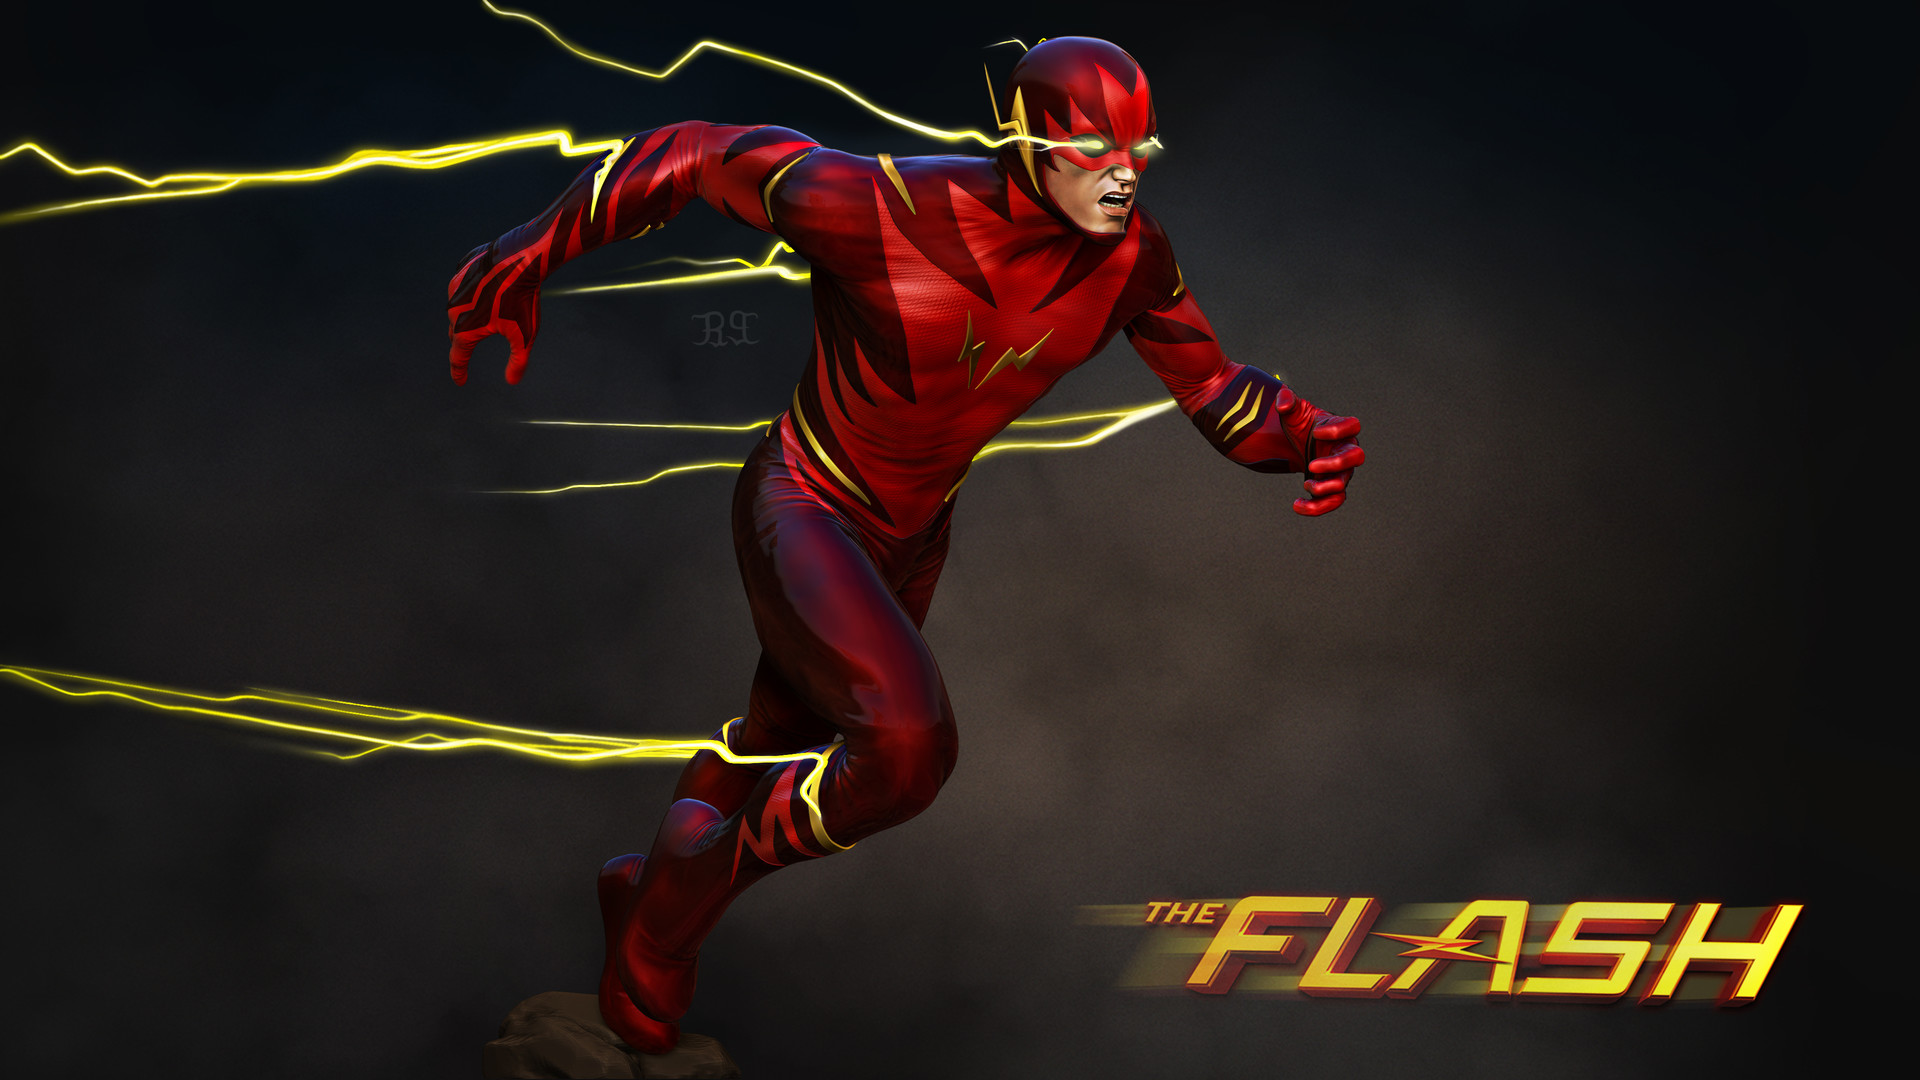 Donwload Flash